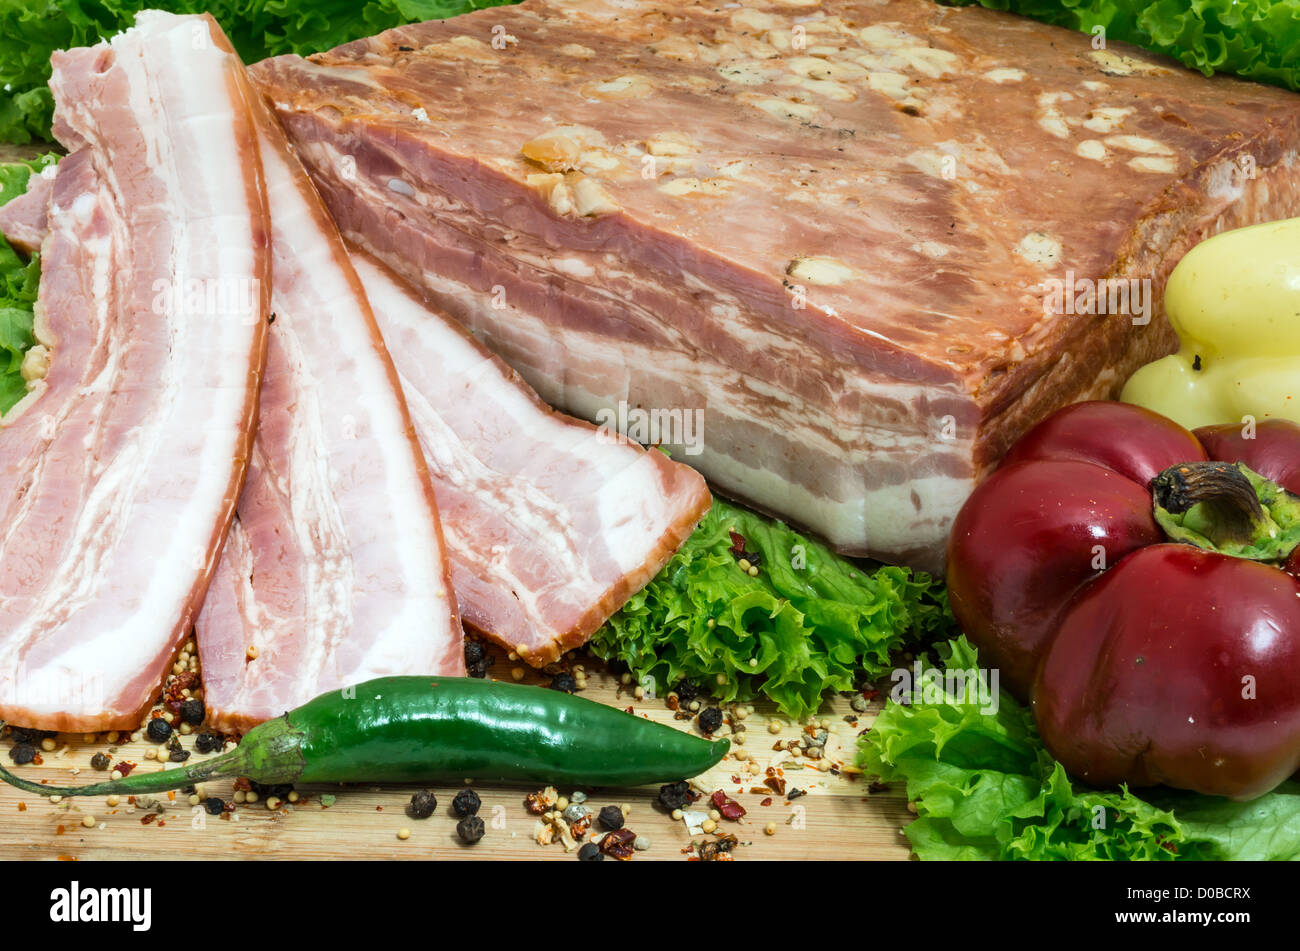 Still life with sliced romanian bacon and vegetables - Stock Image